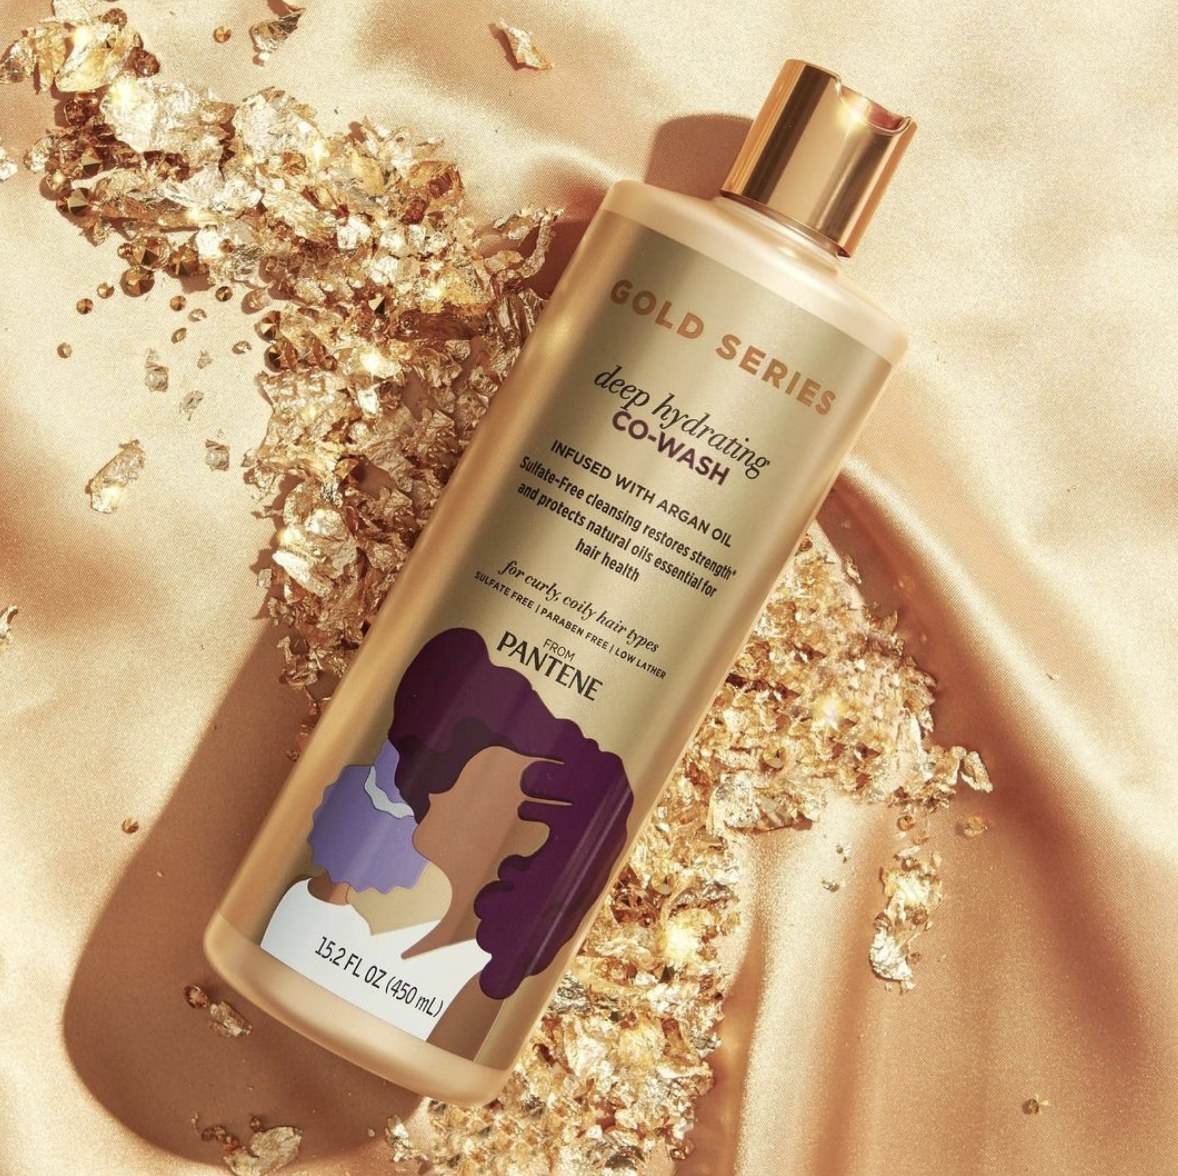 A gold bottle of cleansing conditioner